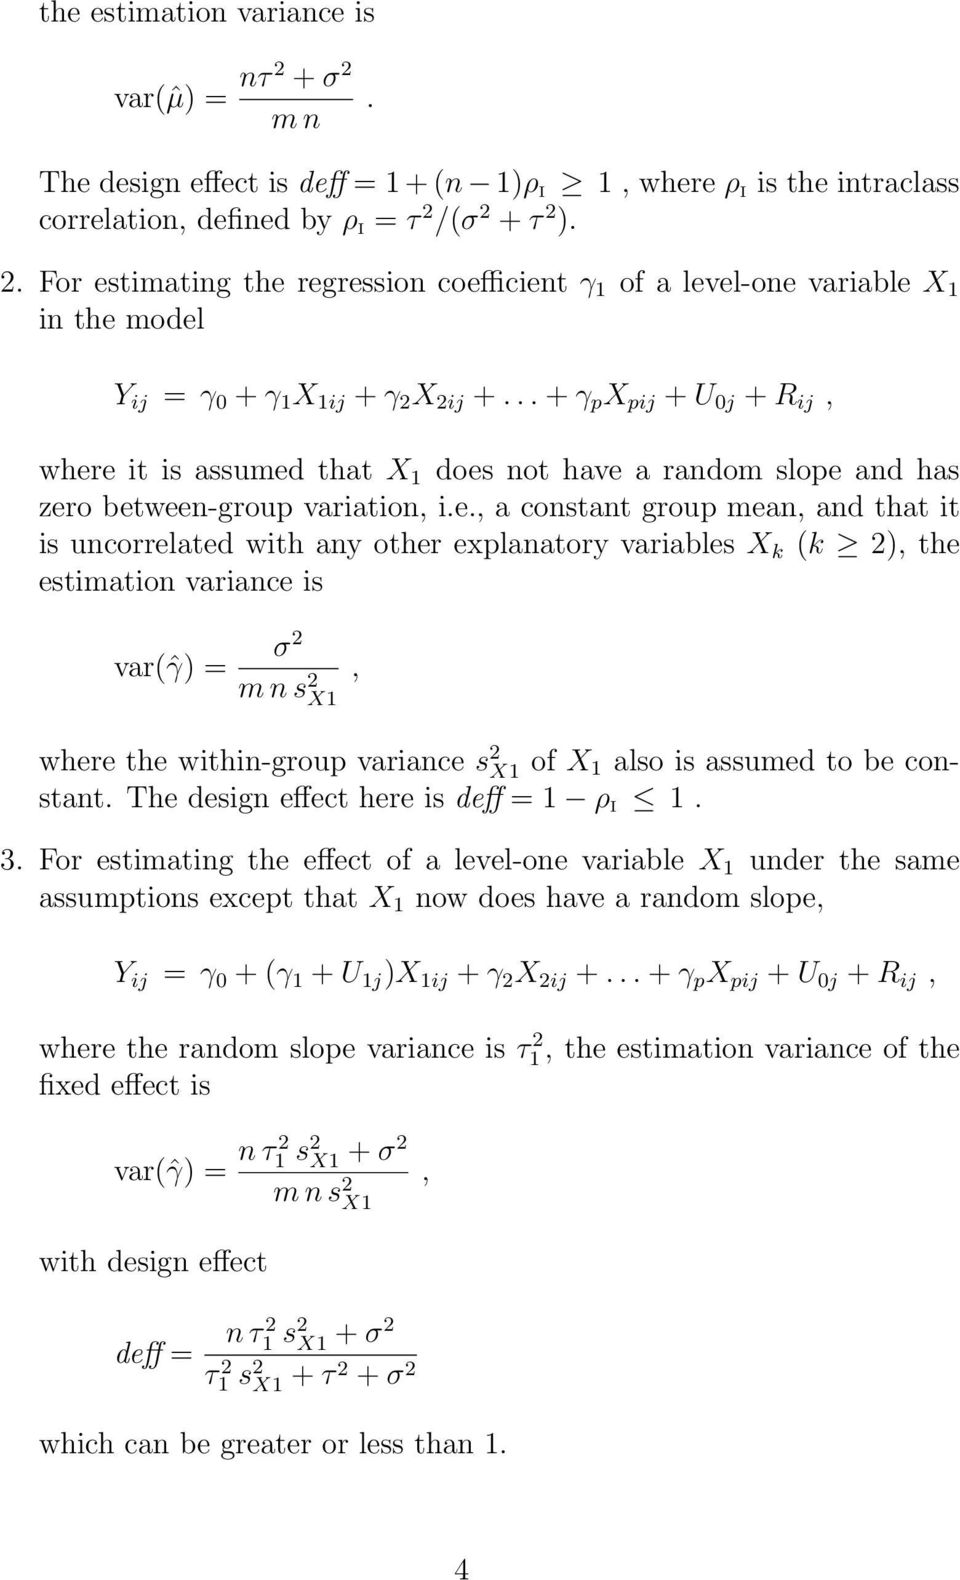 e it is assumed that X 1 does not have a random slope and has zero between-group variation, i.e., a constant group mean, and that it is uncorrelated with any other explanatory variables X k (k 2),